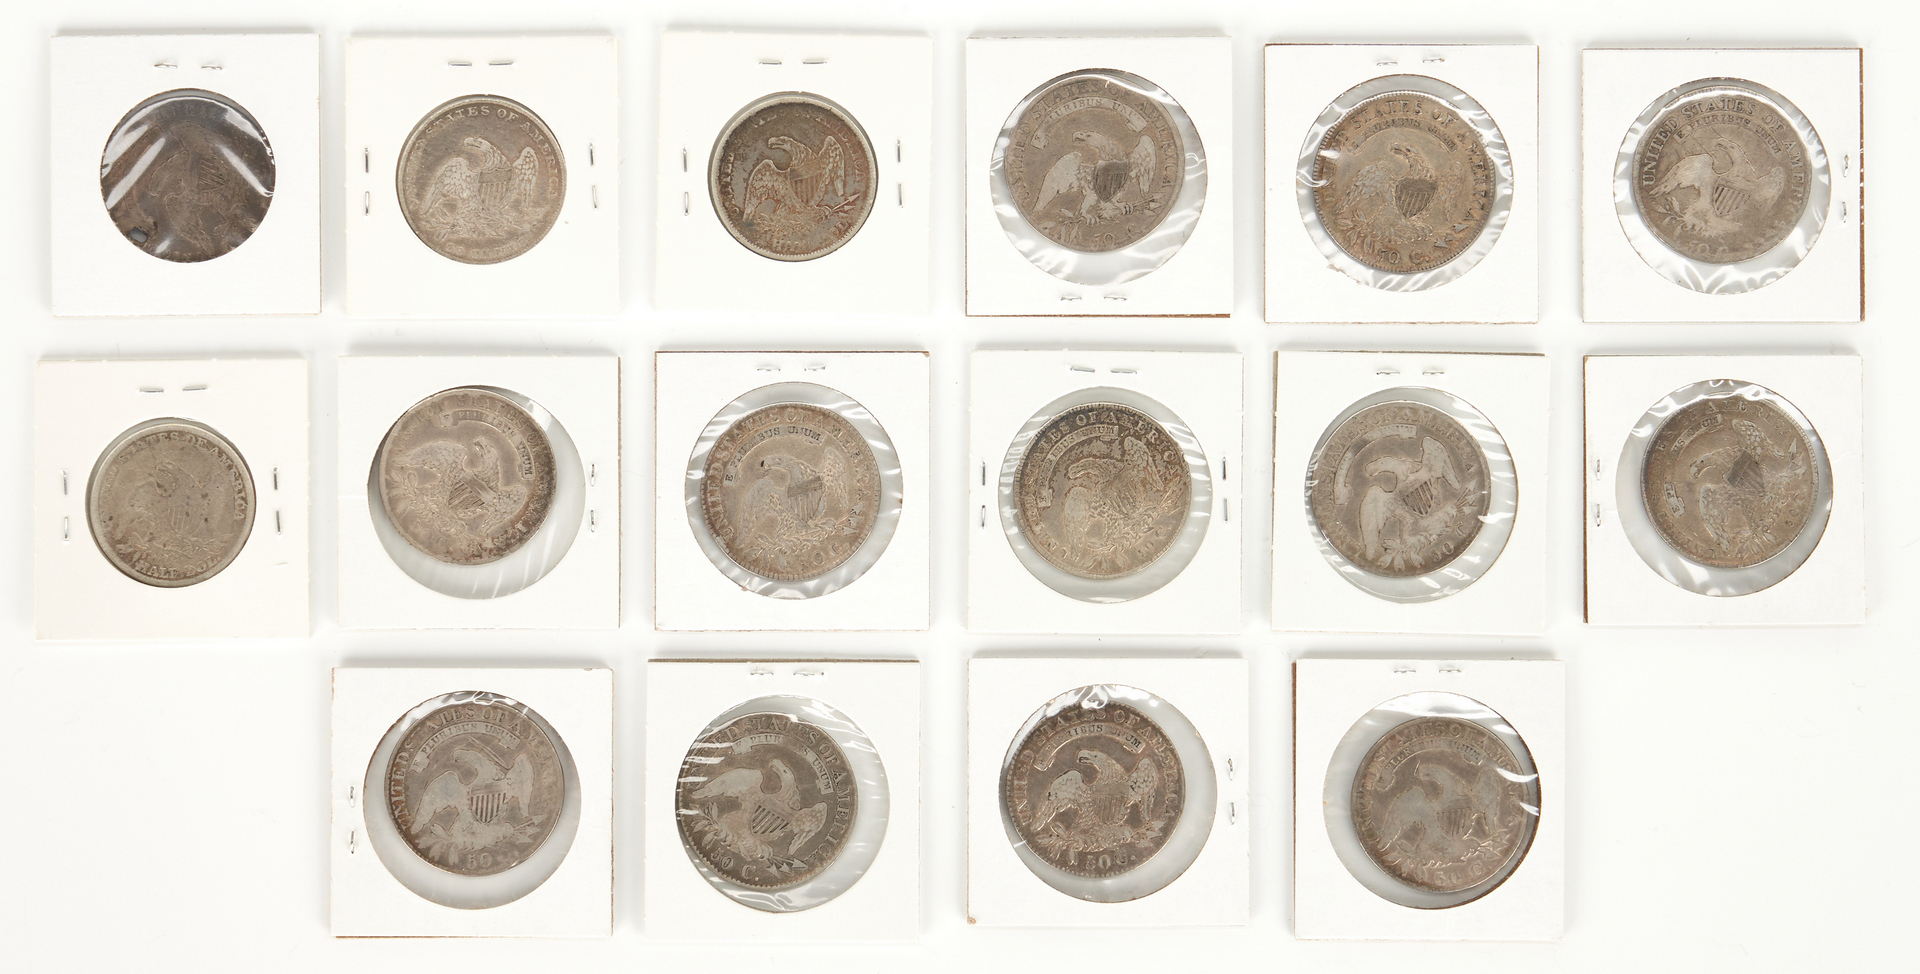 Lot 759: 16 US Capped Bust Silver Half Dollars, 1808-1839